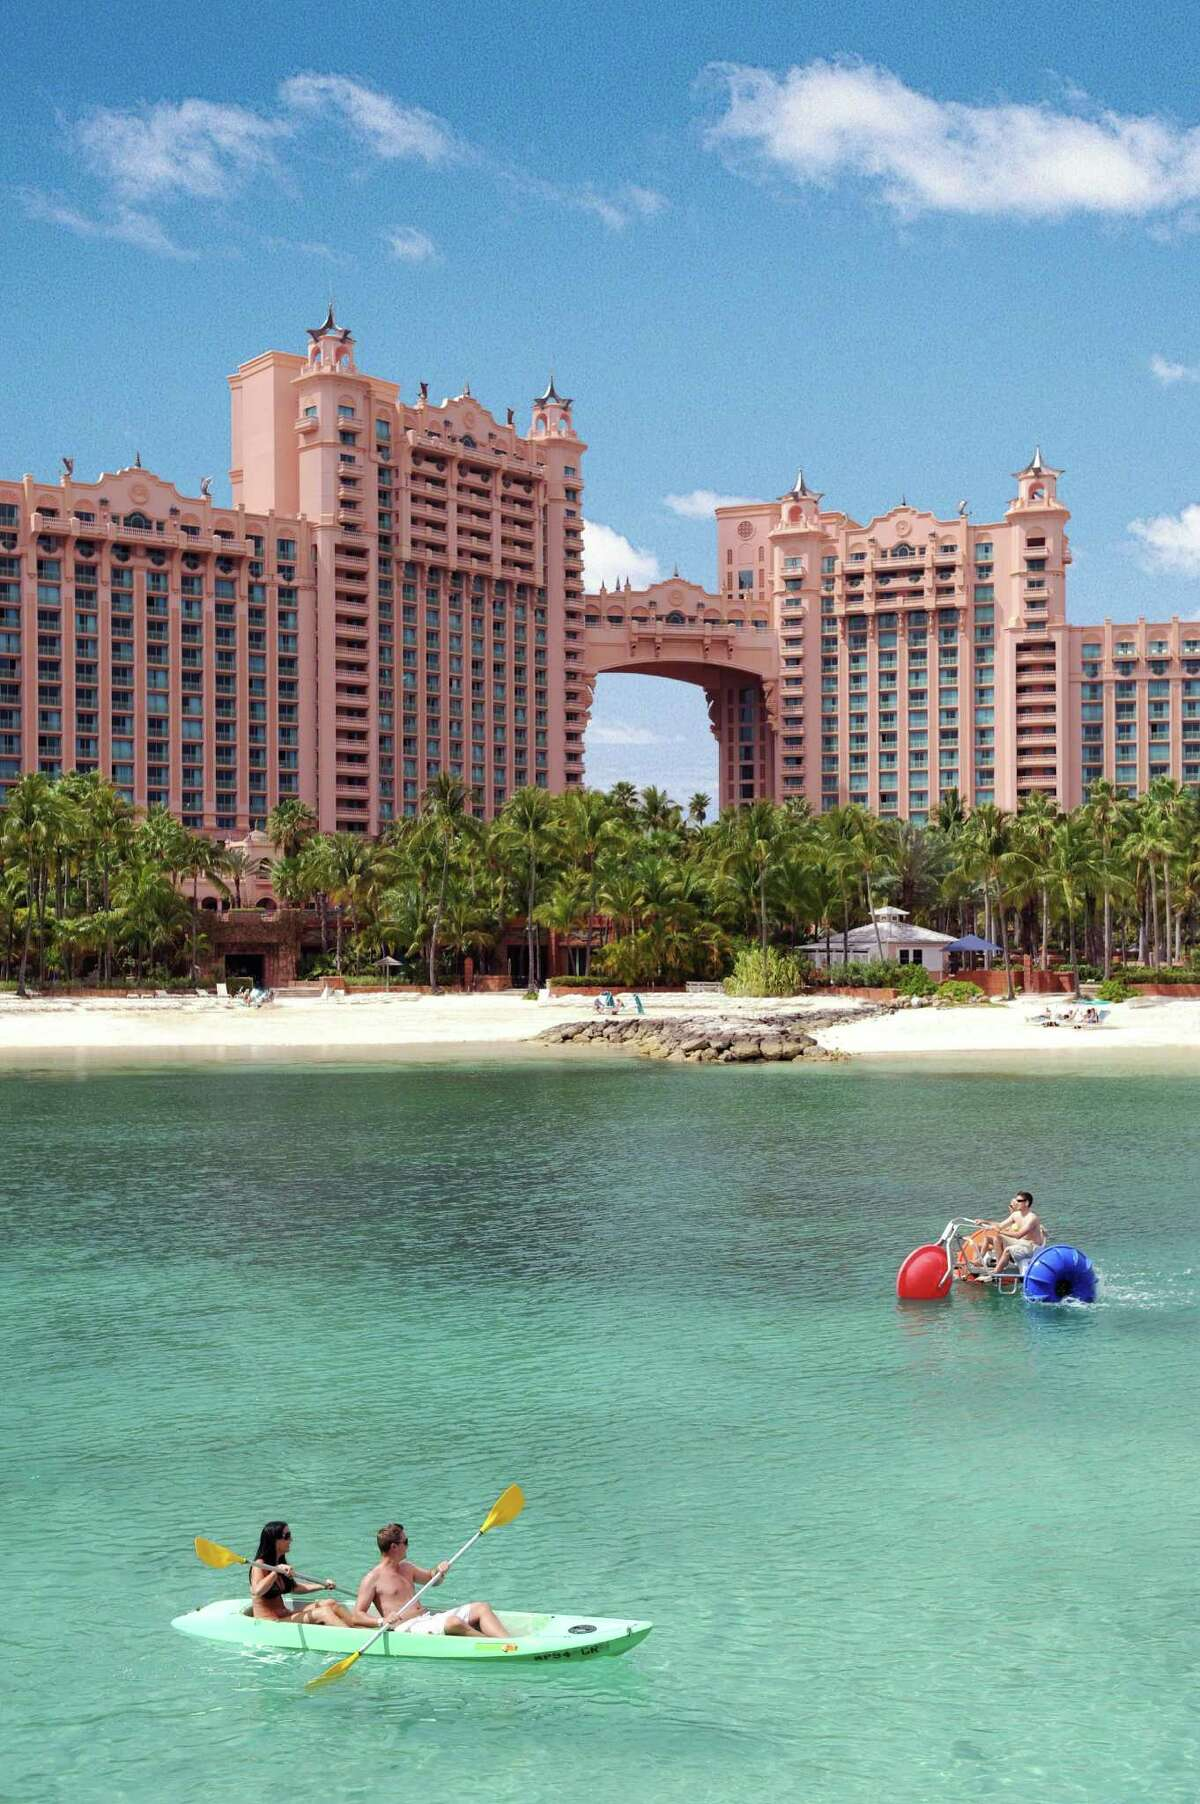 Atlantis Paradise Island Resort Where: The Bahamas Sale: Nov. 24 at midnight through Nov. 30 Includes: Up to 50 percent in savings and a resort credit up to $500 when booking a four-night minimum stay. Rates start at $128 per night. Must be fortravel between Dec. 1 and Nov. 22, 2016 (blackout dates apply). Info:Call 1-888-877-7525 or visitatlantisbahamas.com